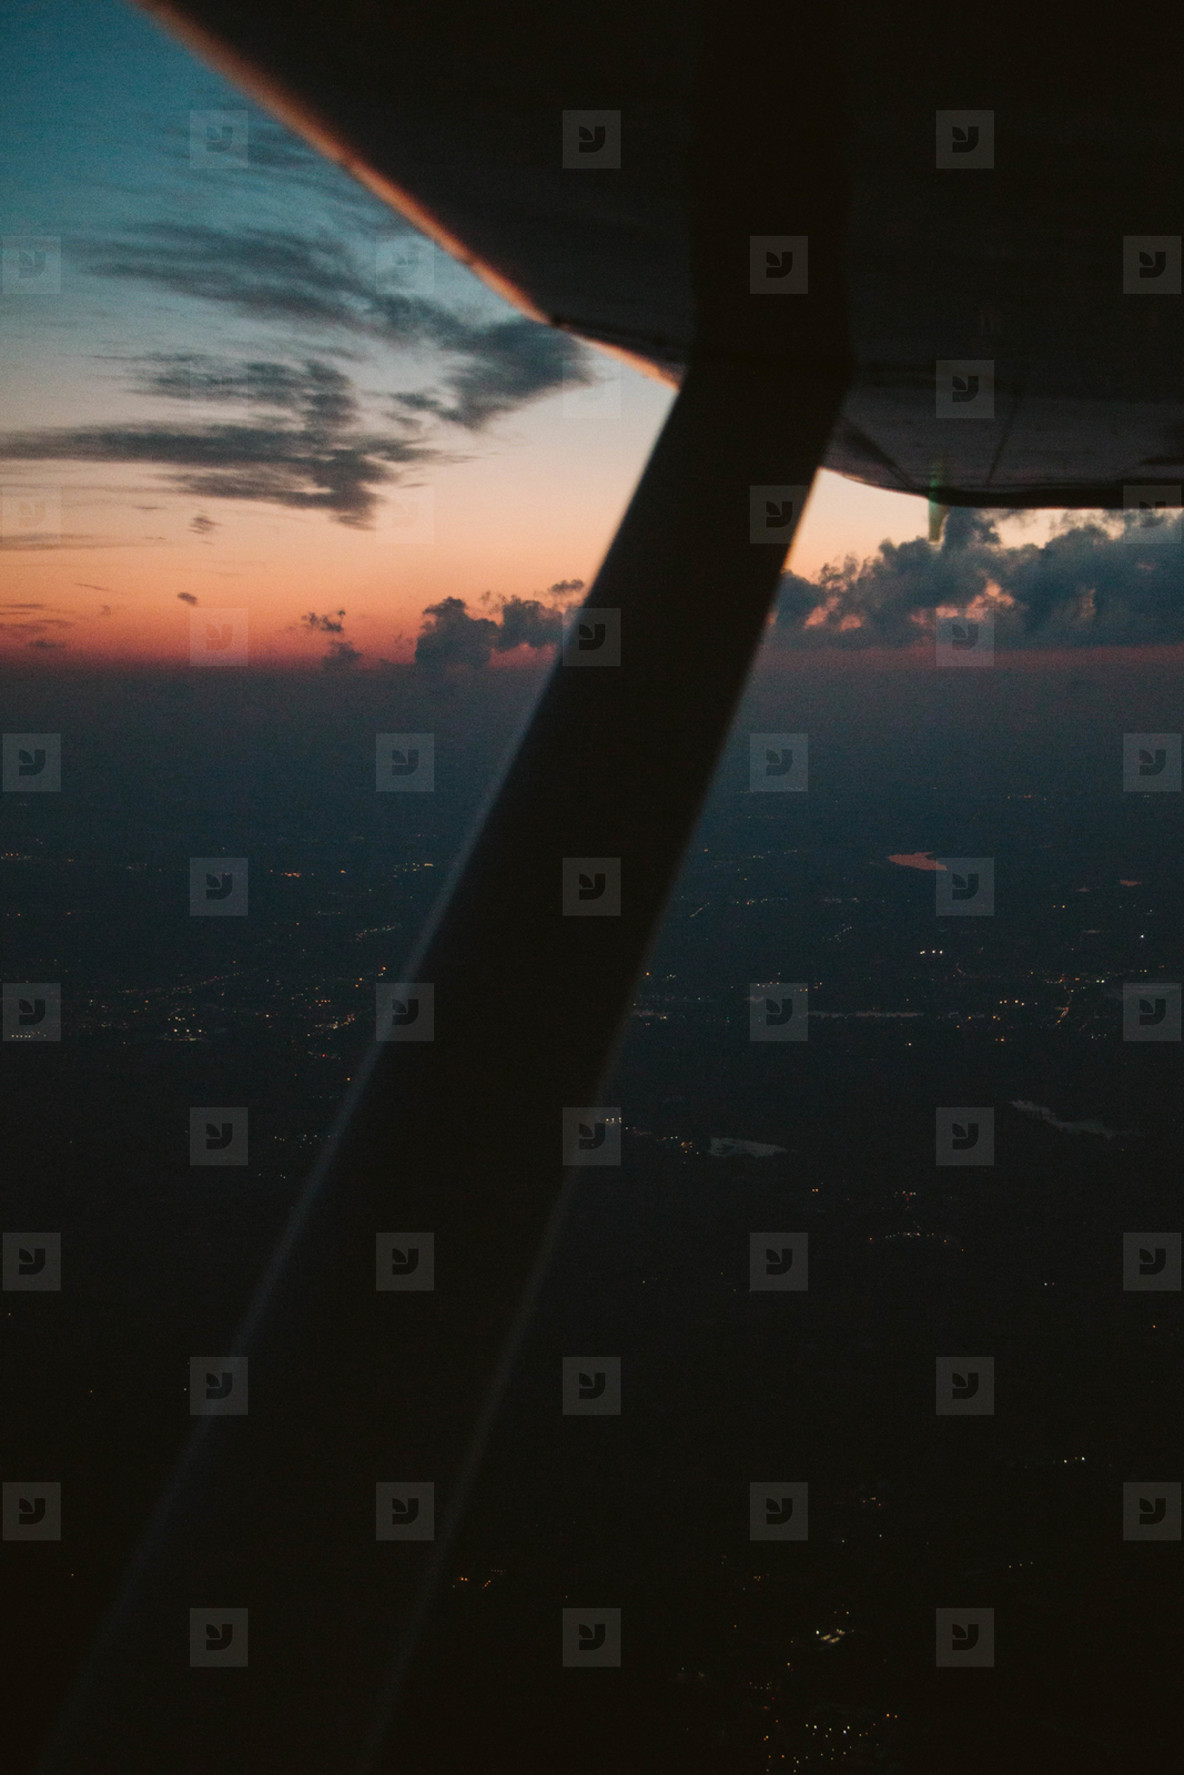 Sunset out airplane window